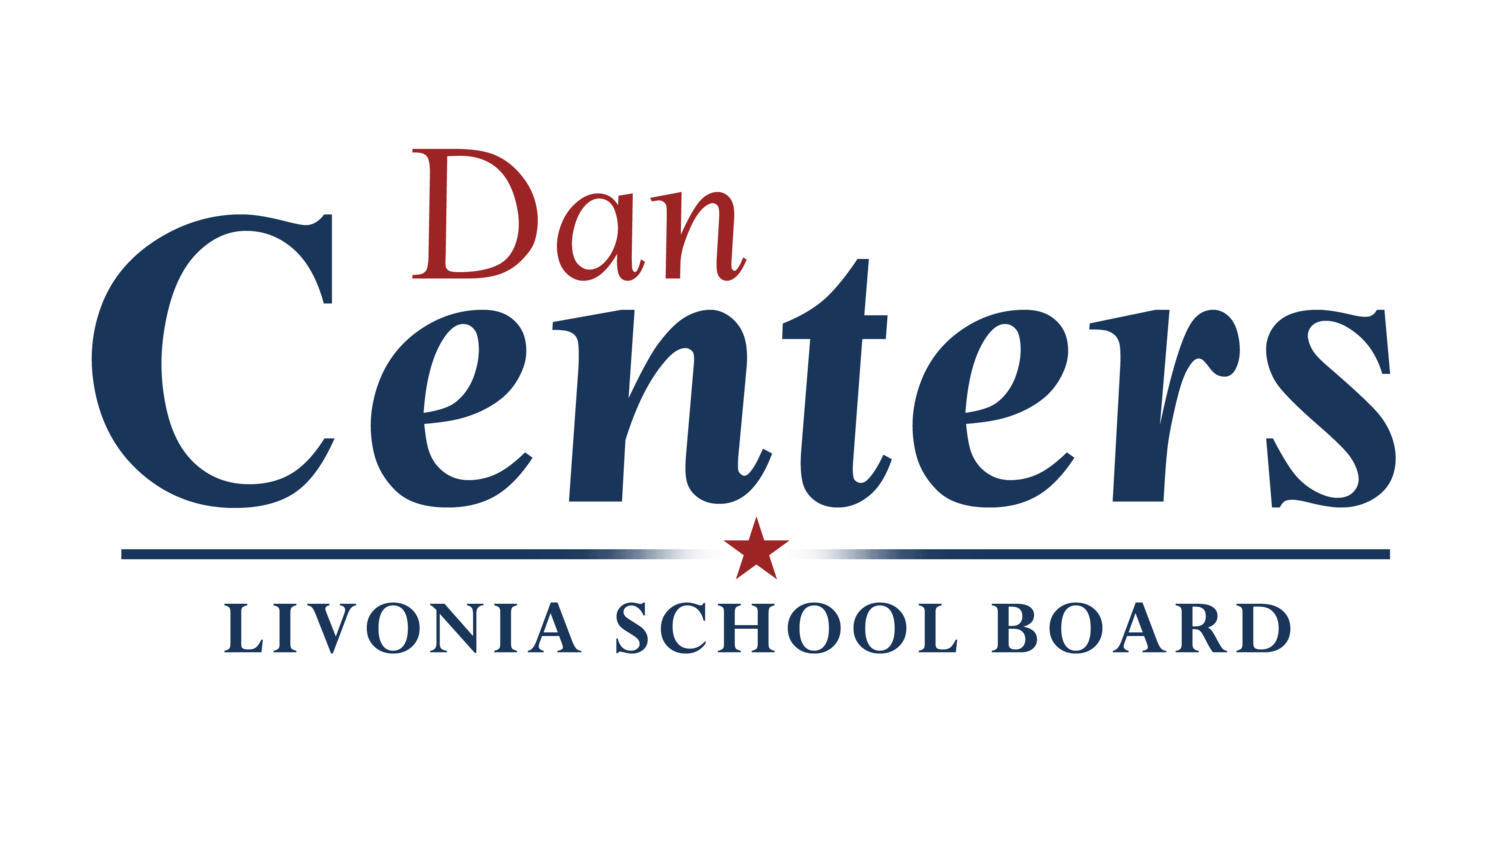 Dan Centers for Livonia School Board